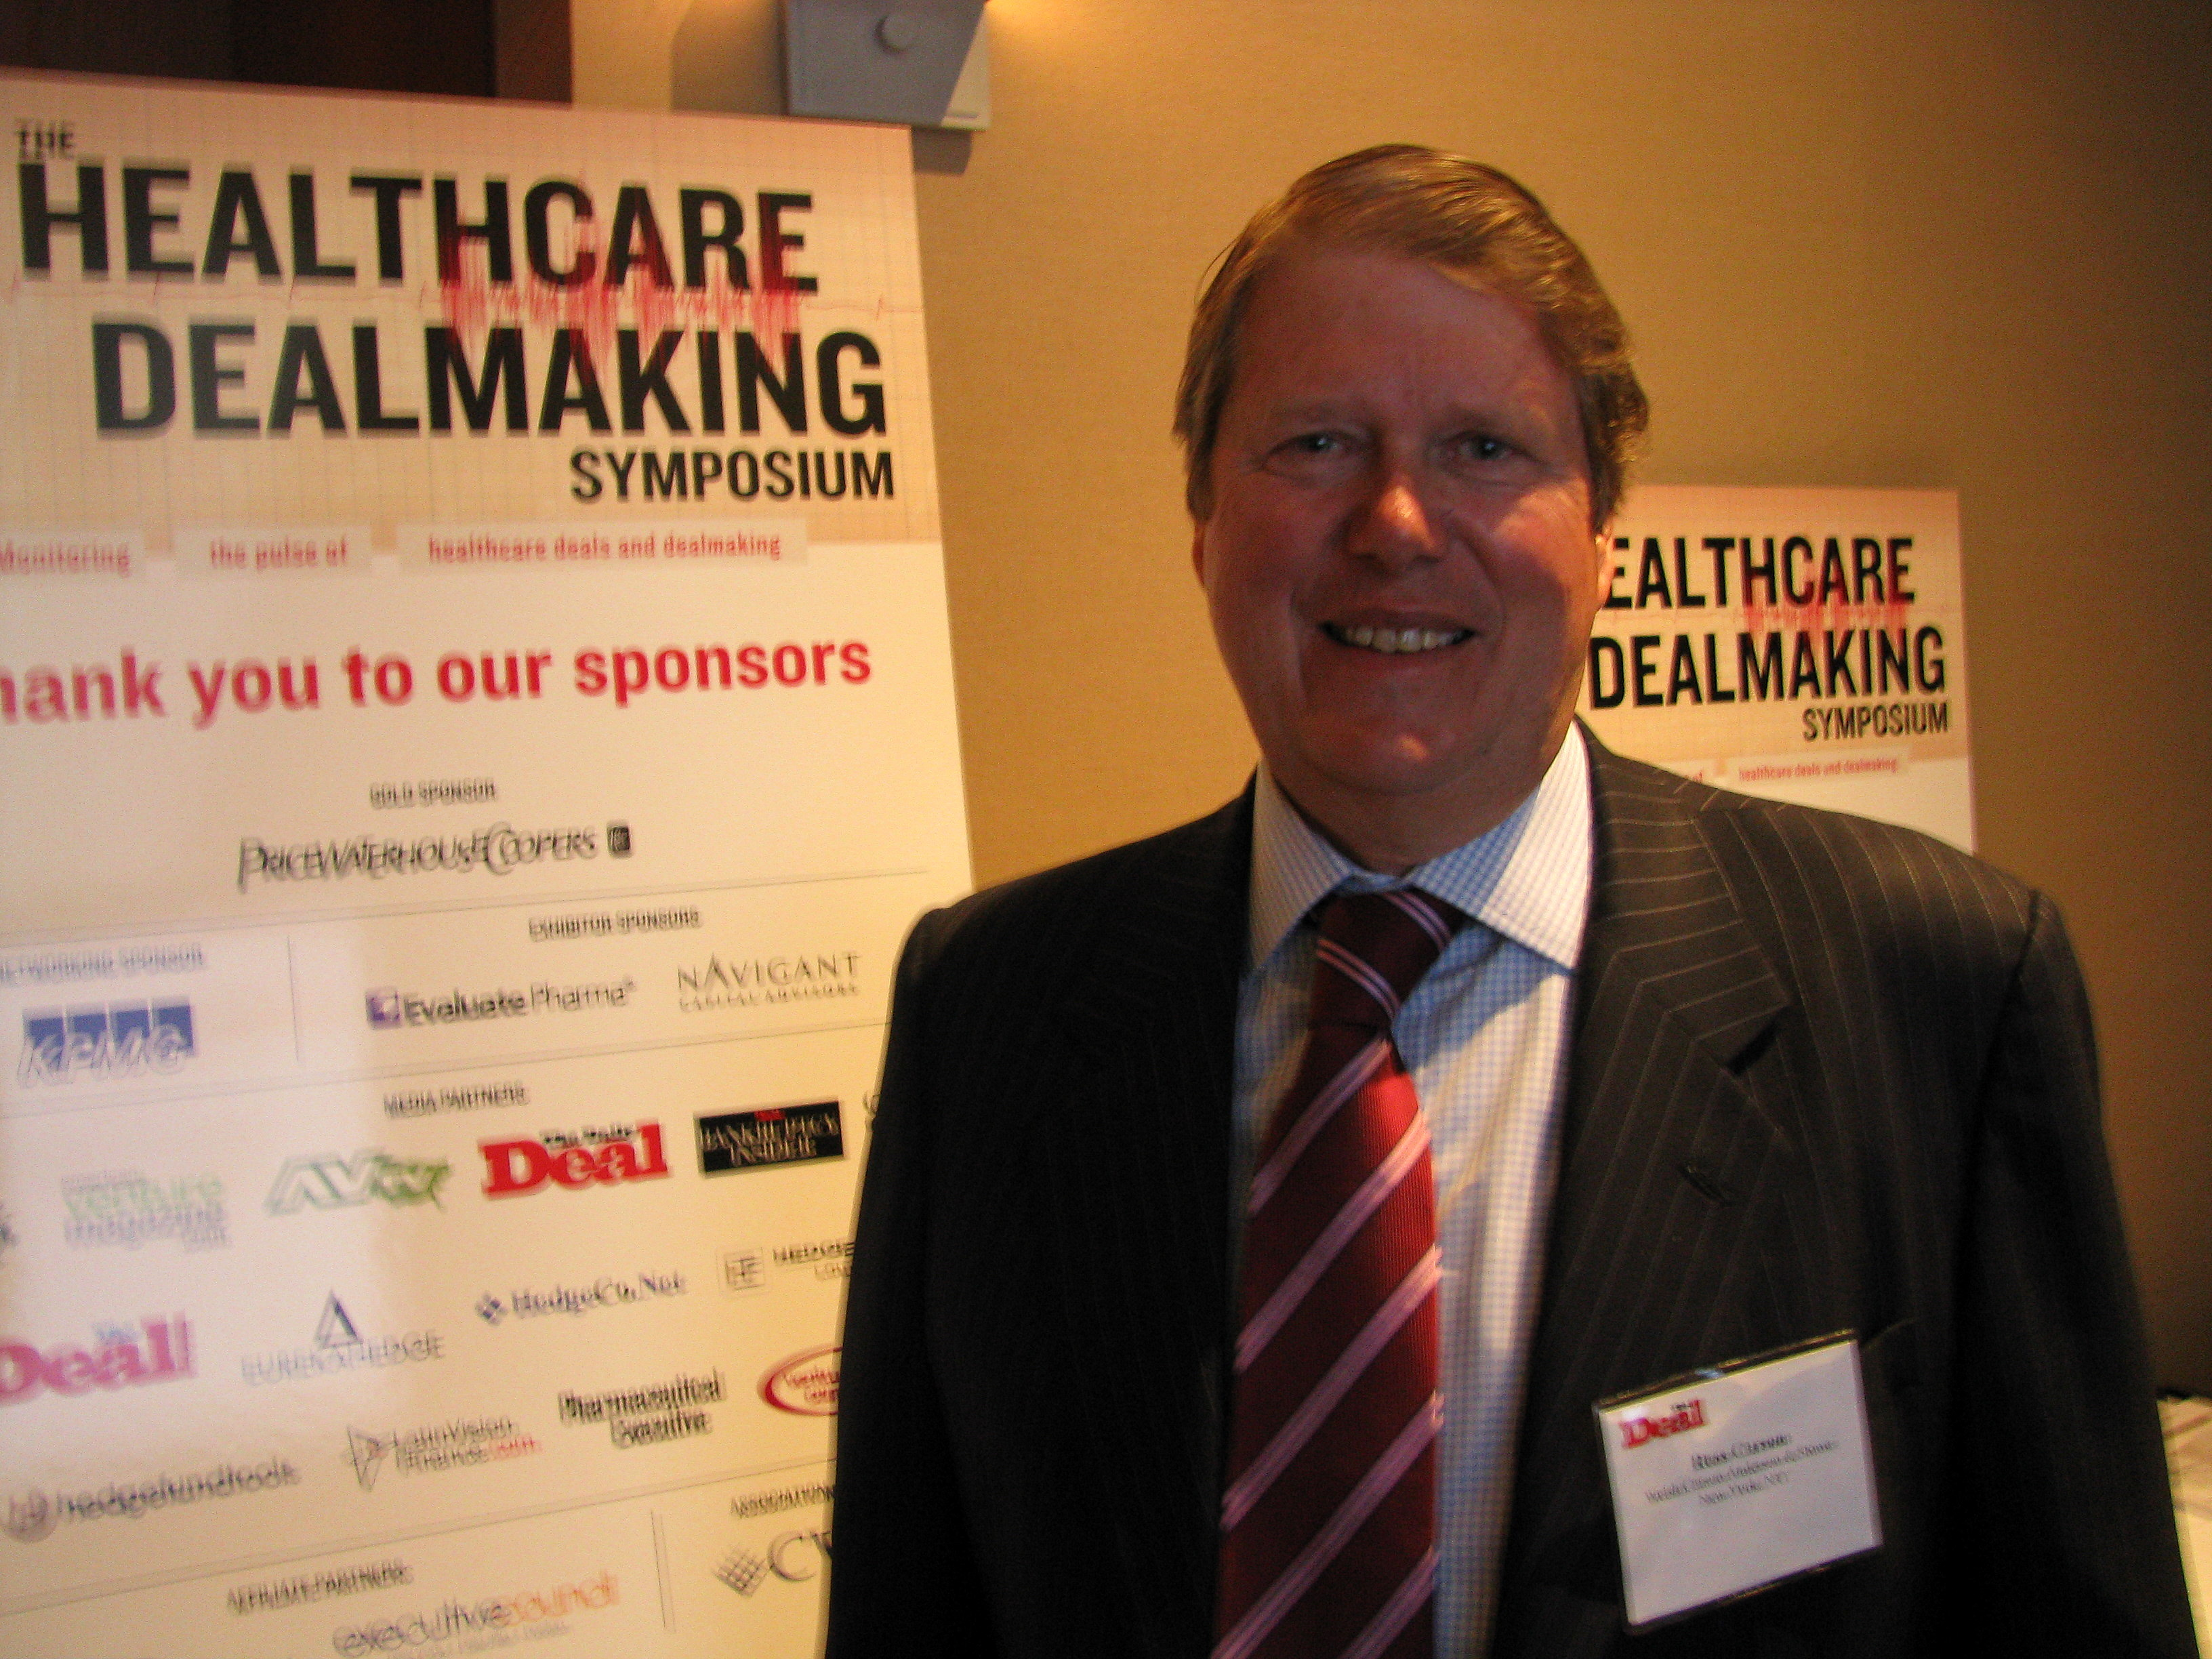 Healthcare Dealmaking Symposium: 12-Month Outlook